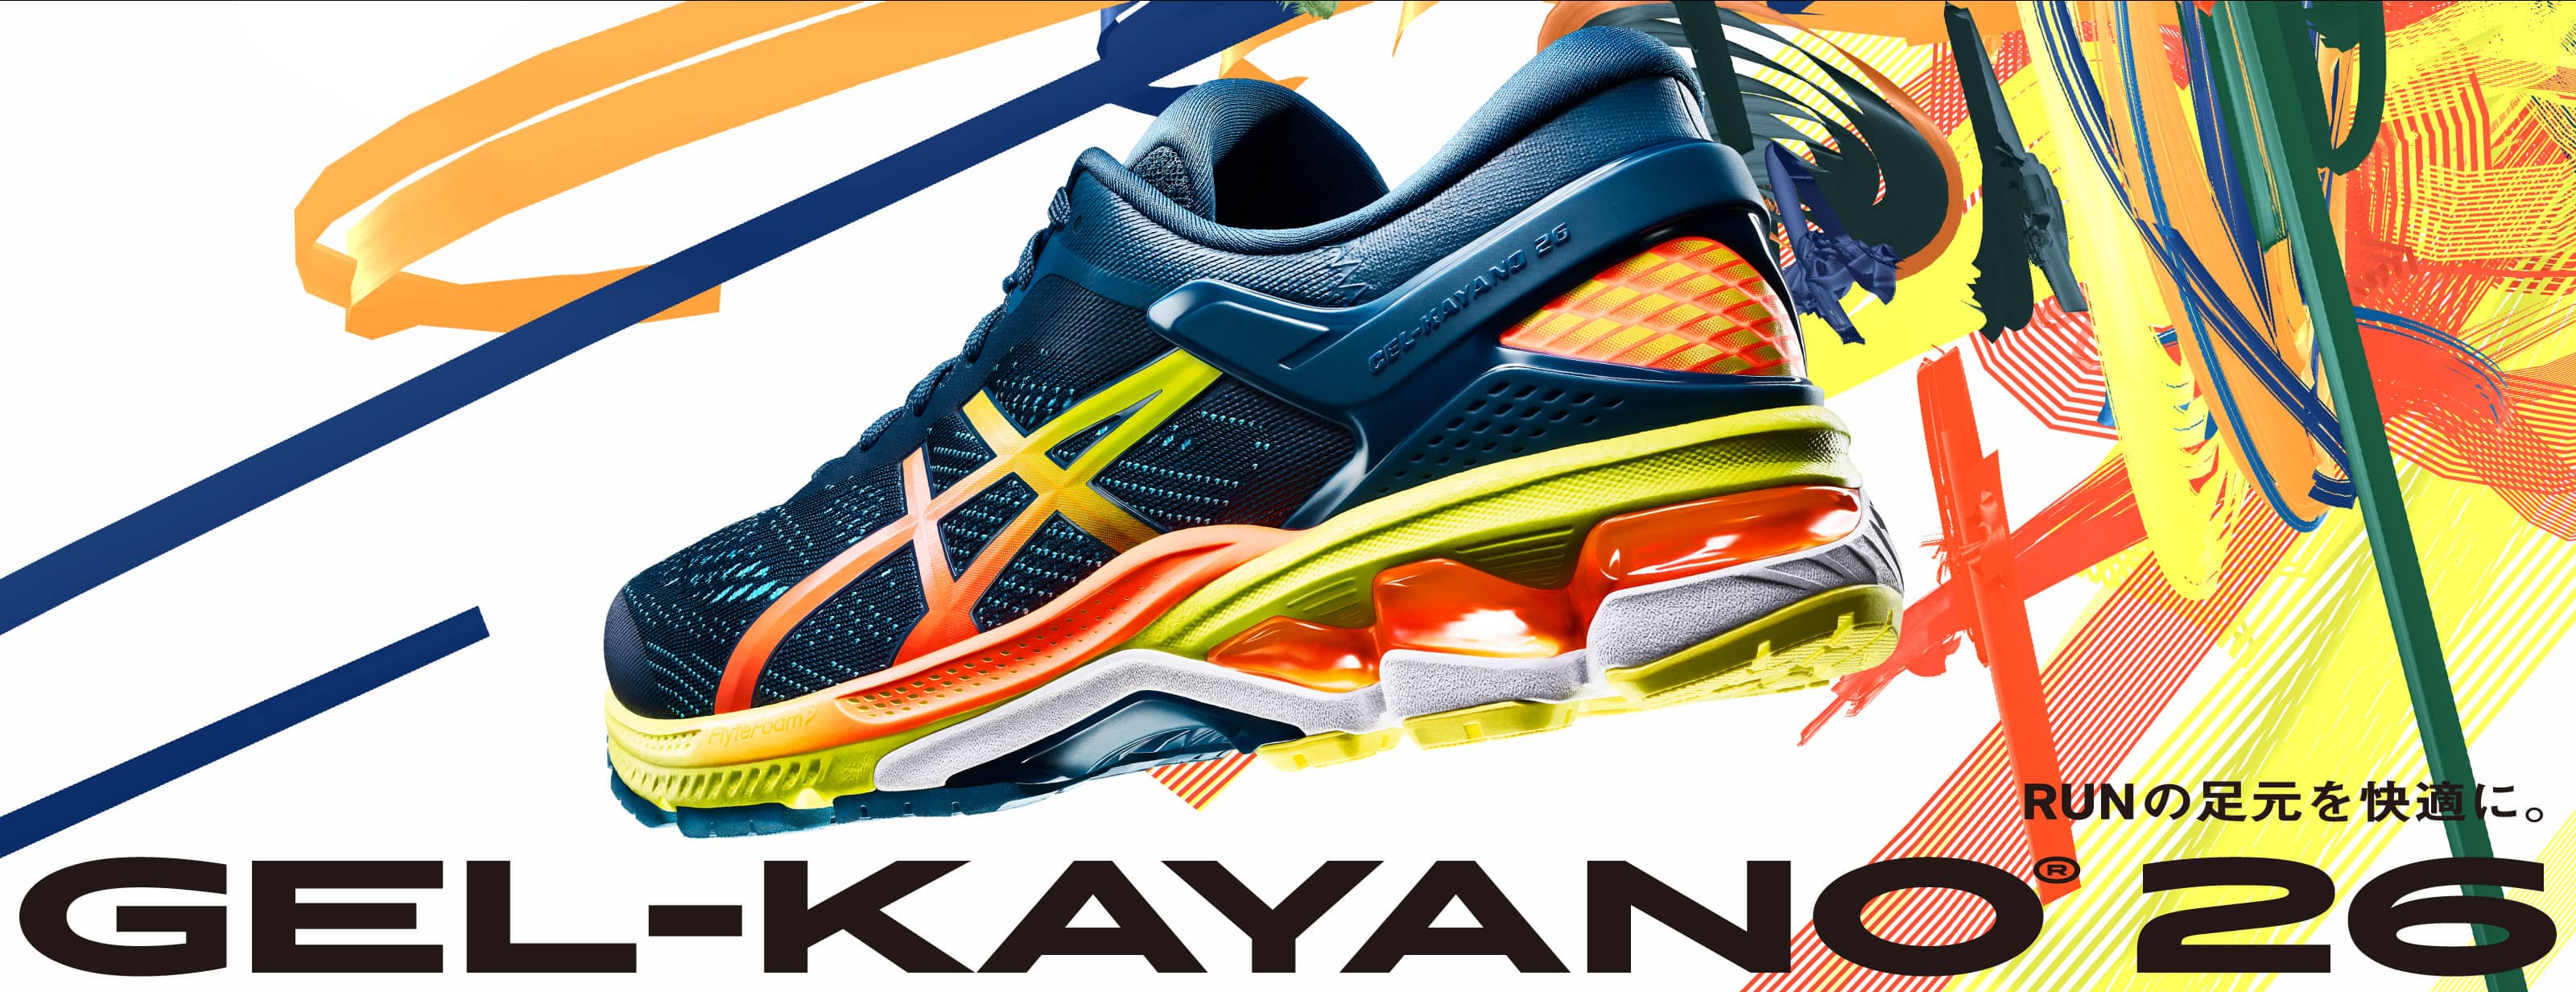 running kayano 26 zkn hero pc 1600 x 616